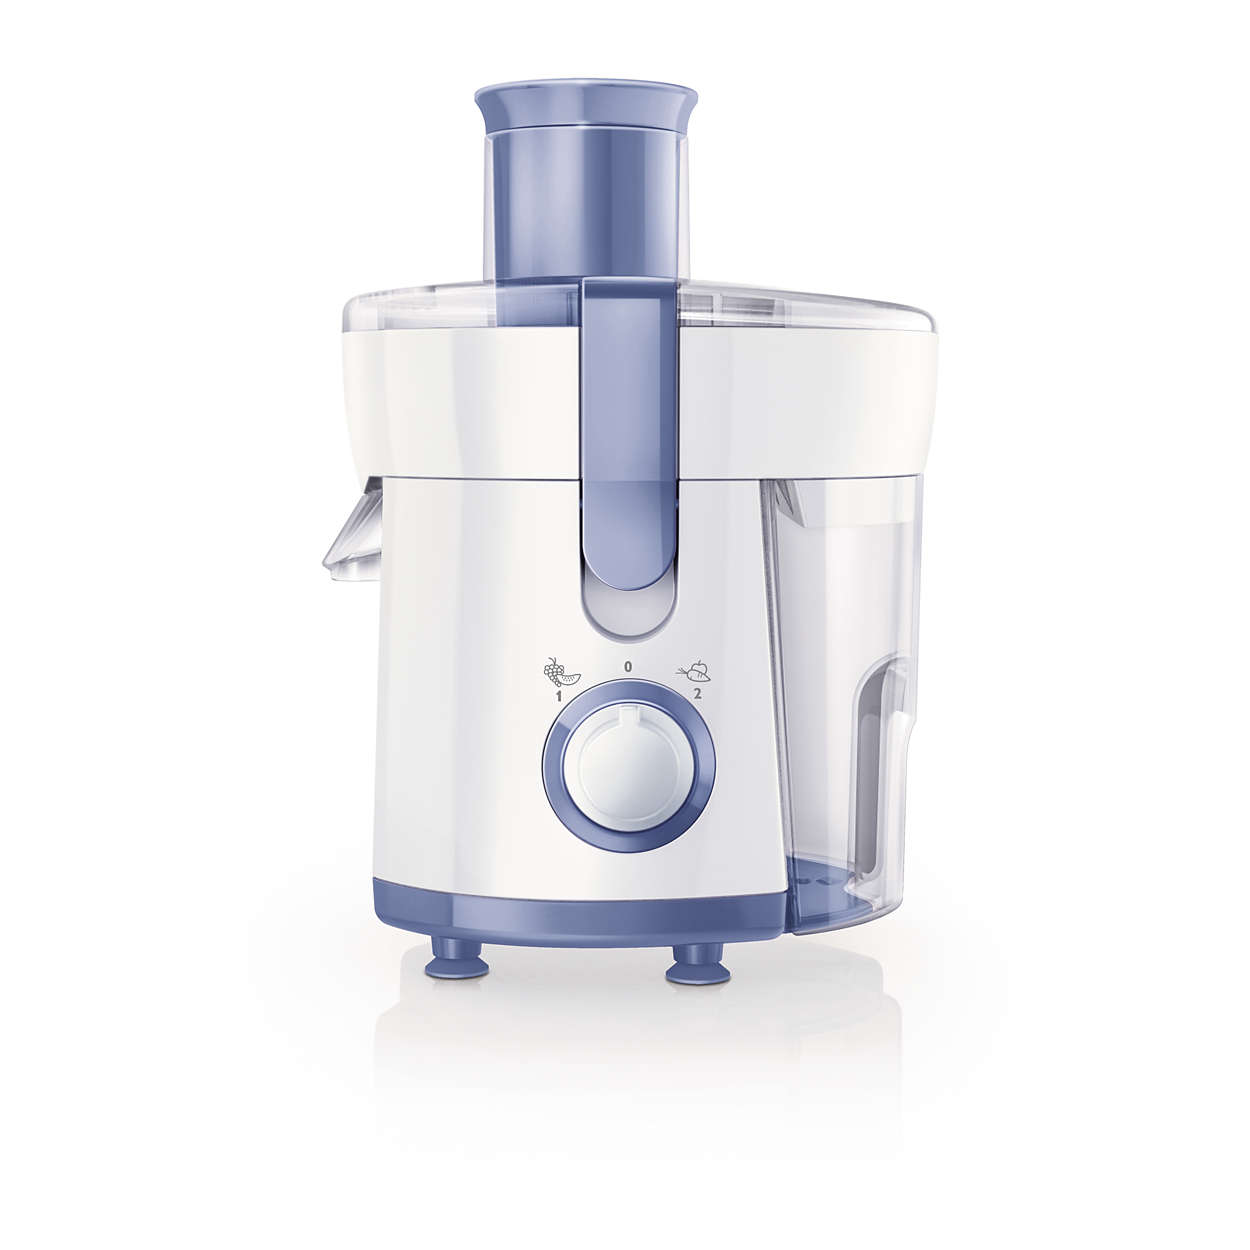 Philips Slow Juicer Manual : Daily Collection Juicer HR1811/71 Philips